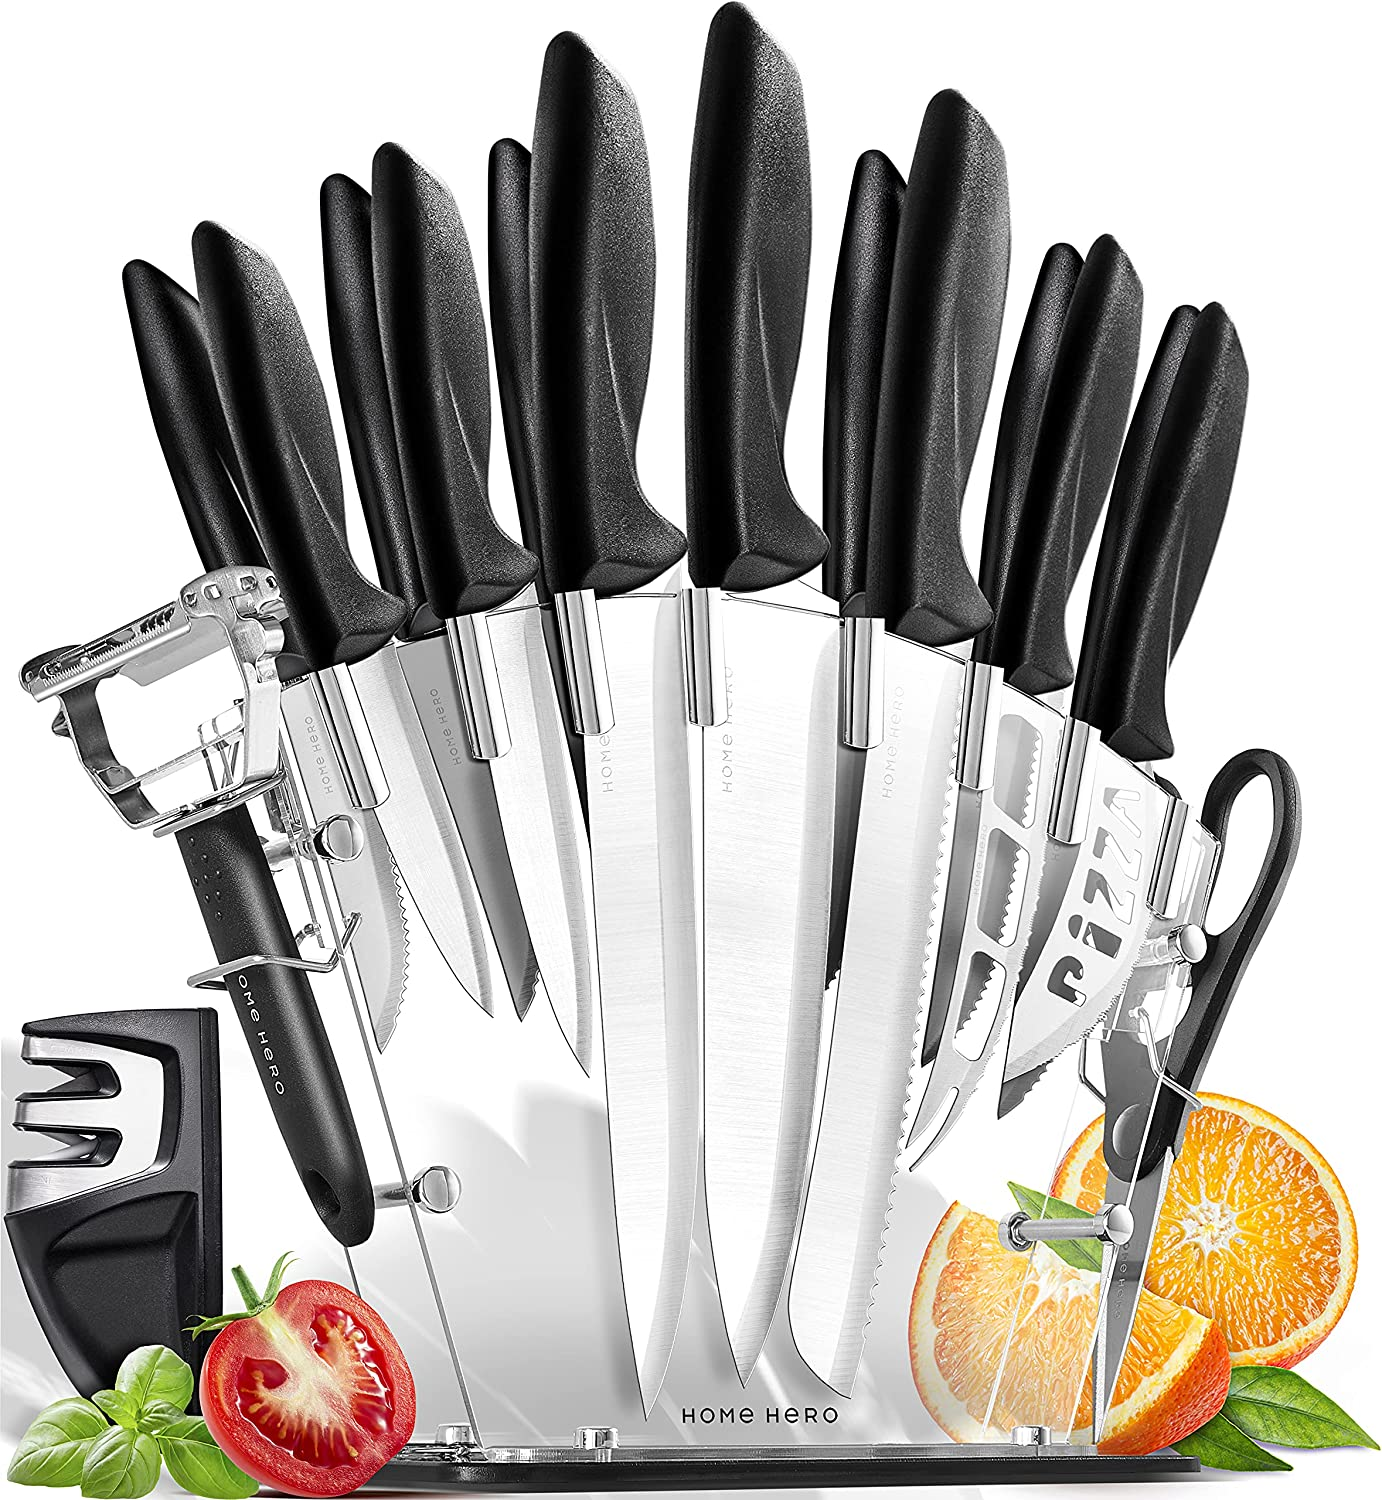 Home Hero 17 Pieces Kitchen Knives Set, 13 Knives with Stainless Steel Blade + Acrylic Stand, Scissors, Peeler and Knife Sharpener